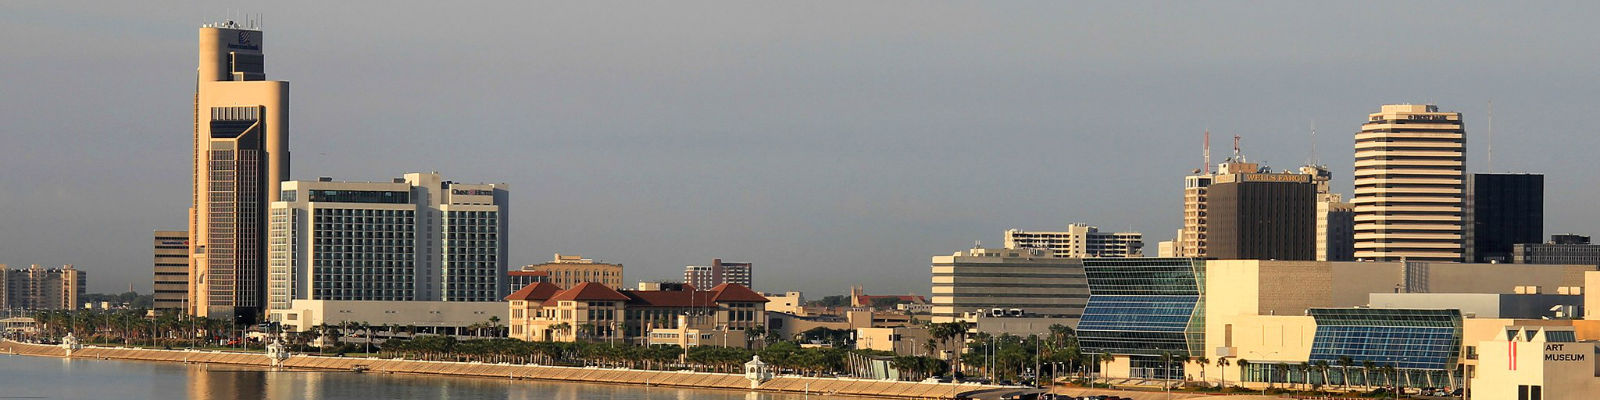 This is a cityscape image in Corpus Christi Texas. ASTA-USA provides professional translation services in this city.